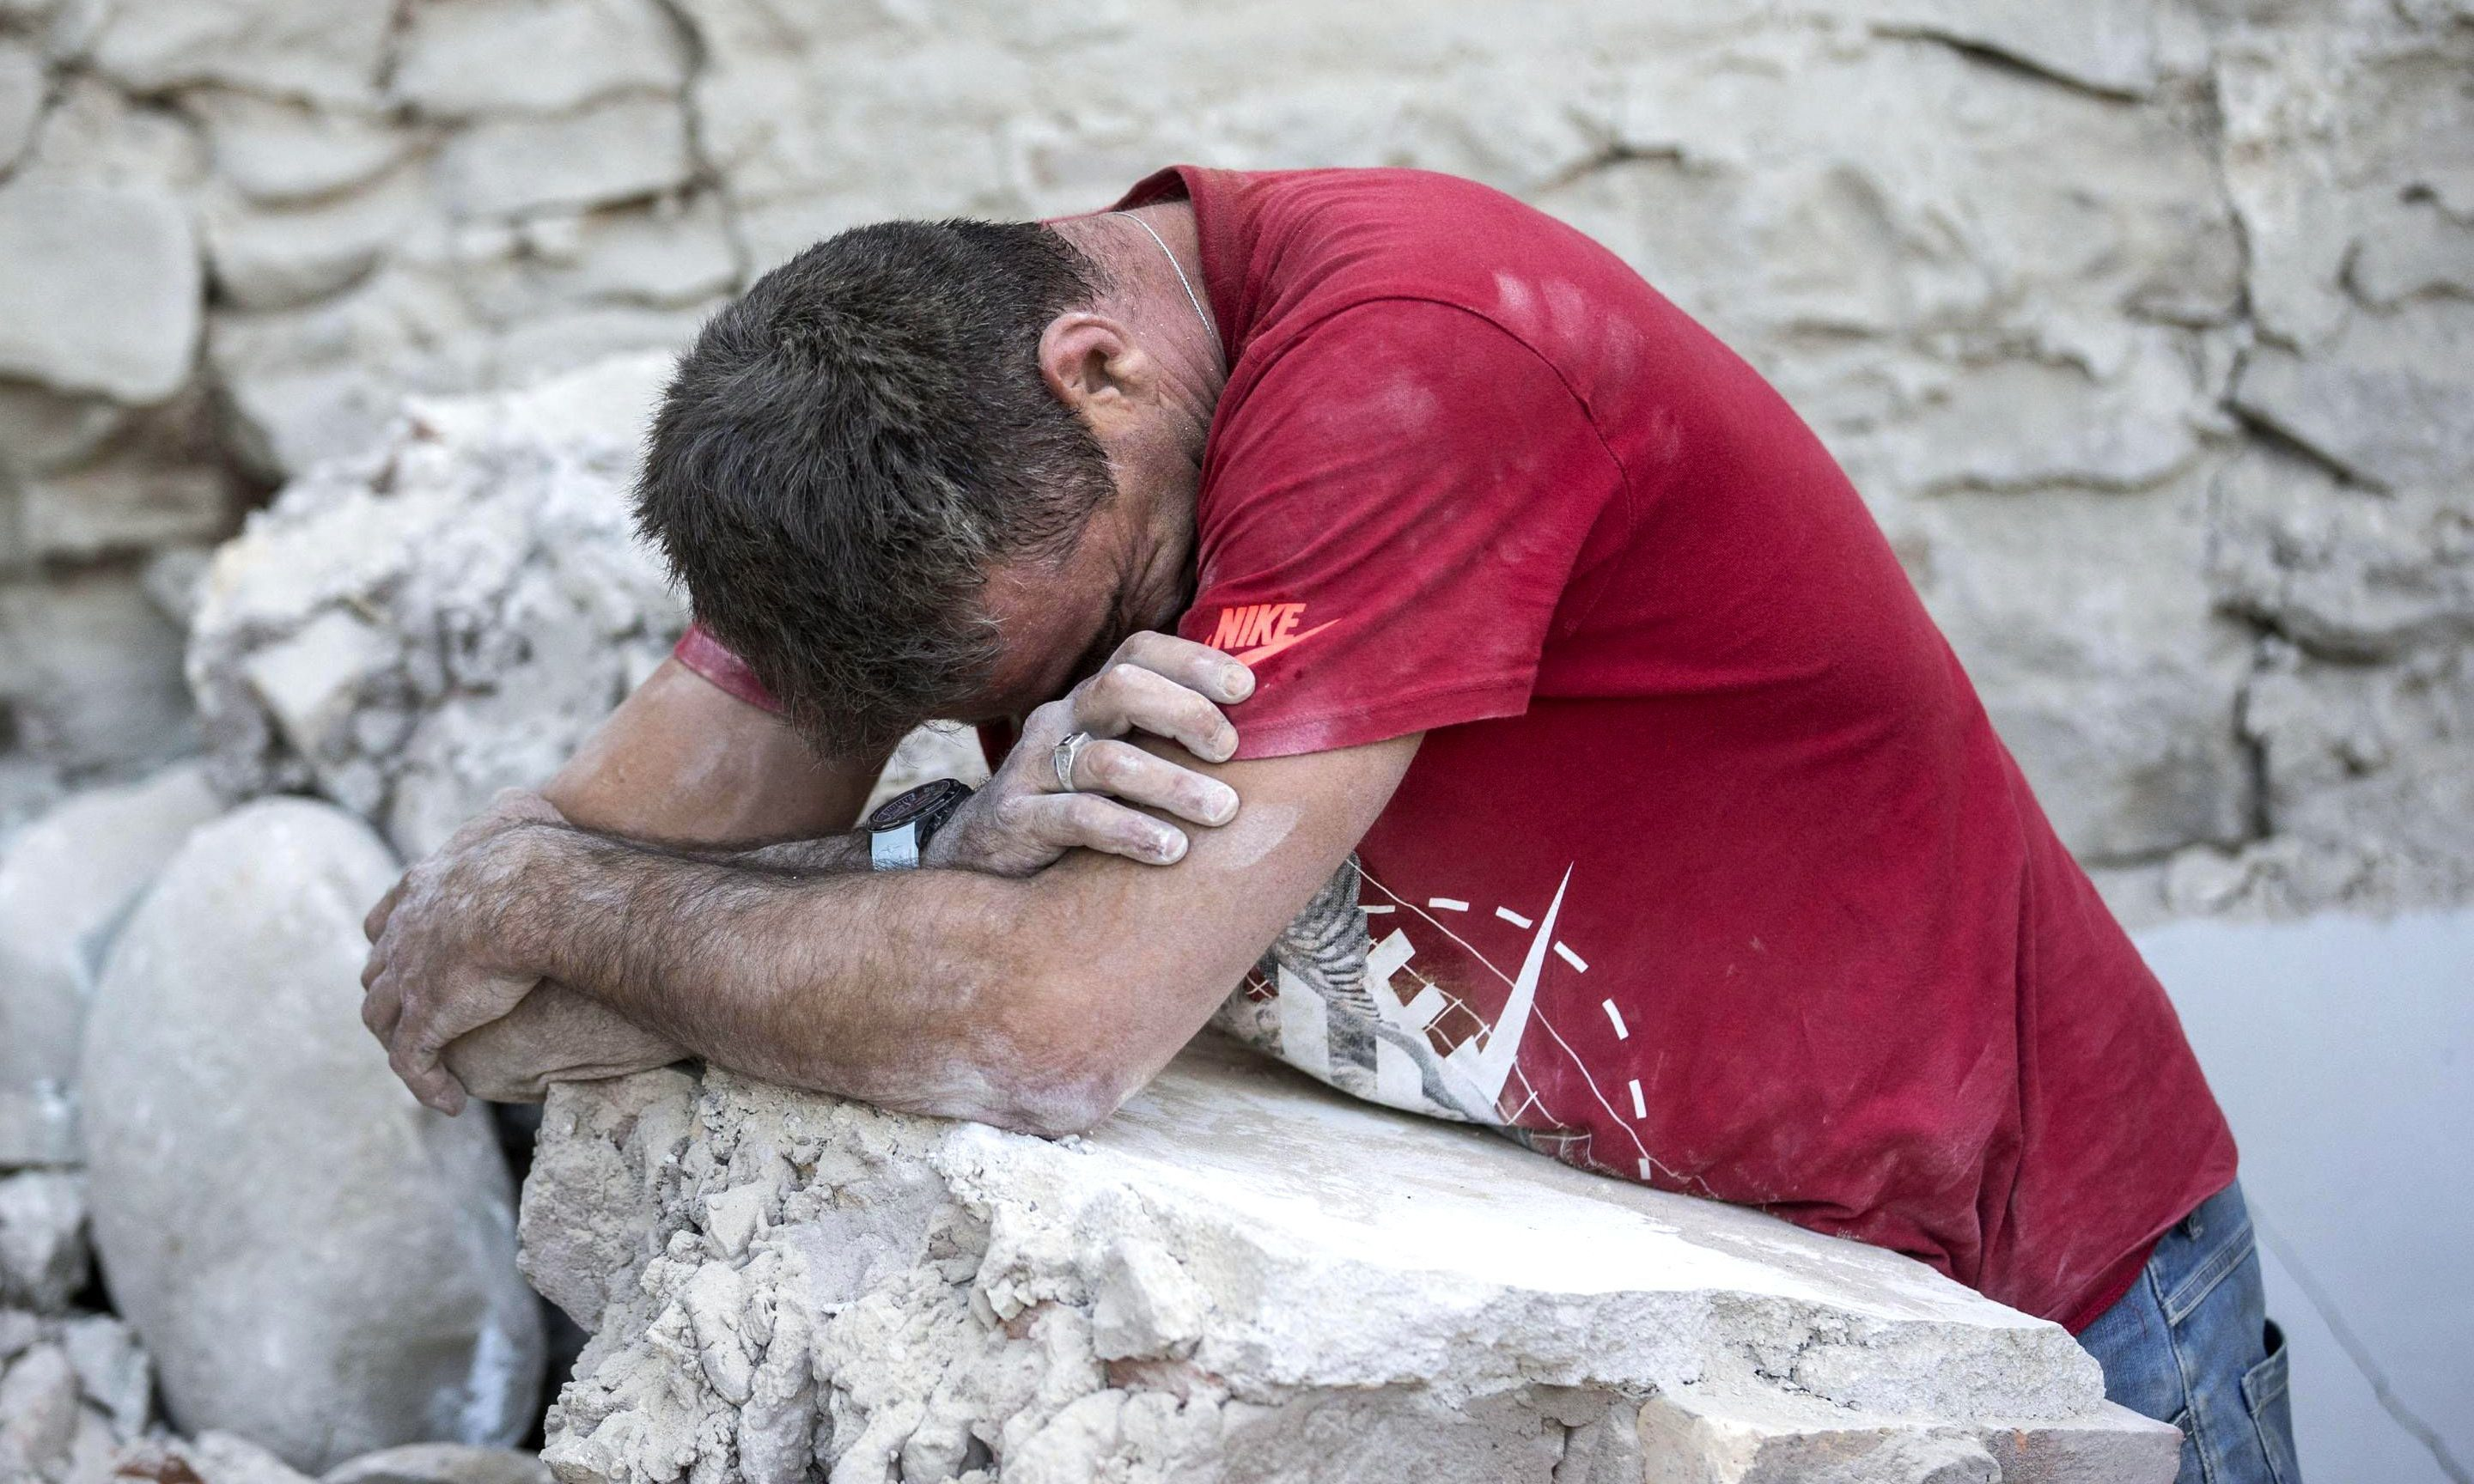 A man leans on rubble in Amatrice as the search continues.